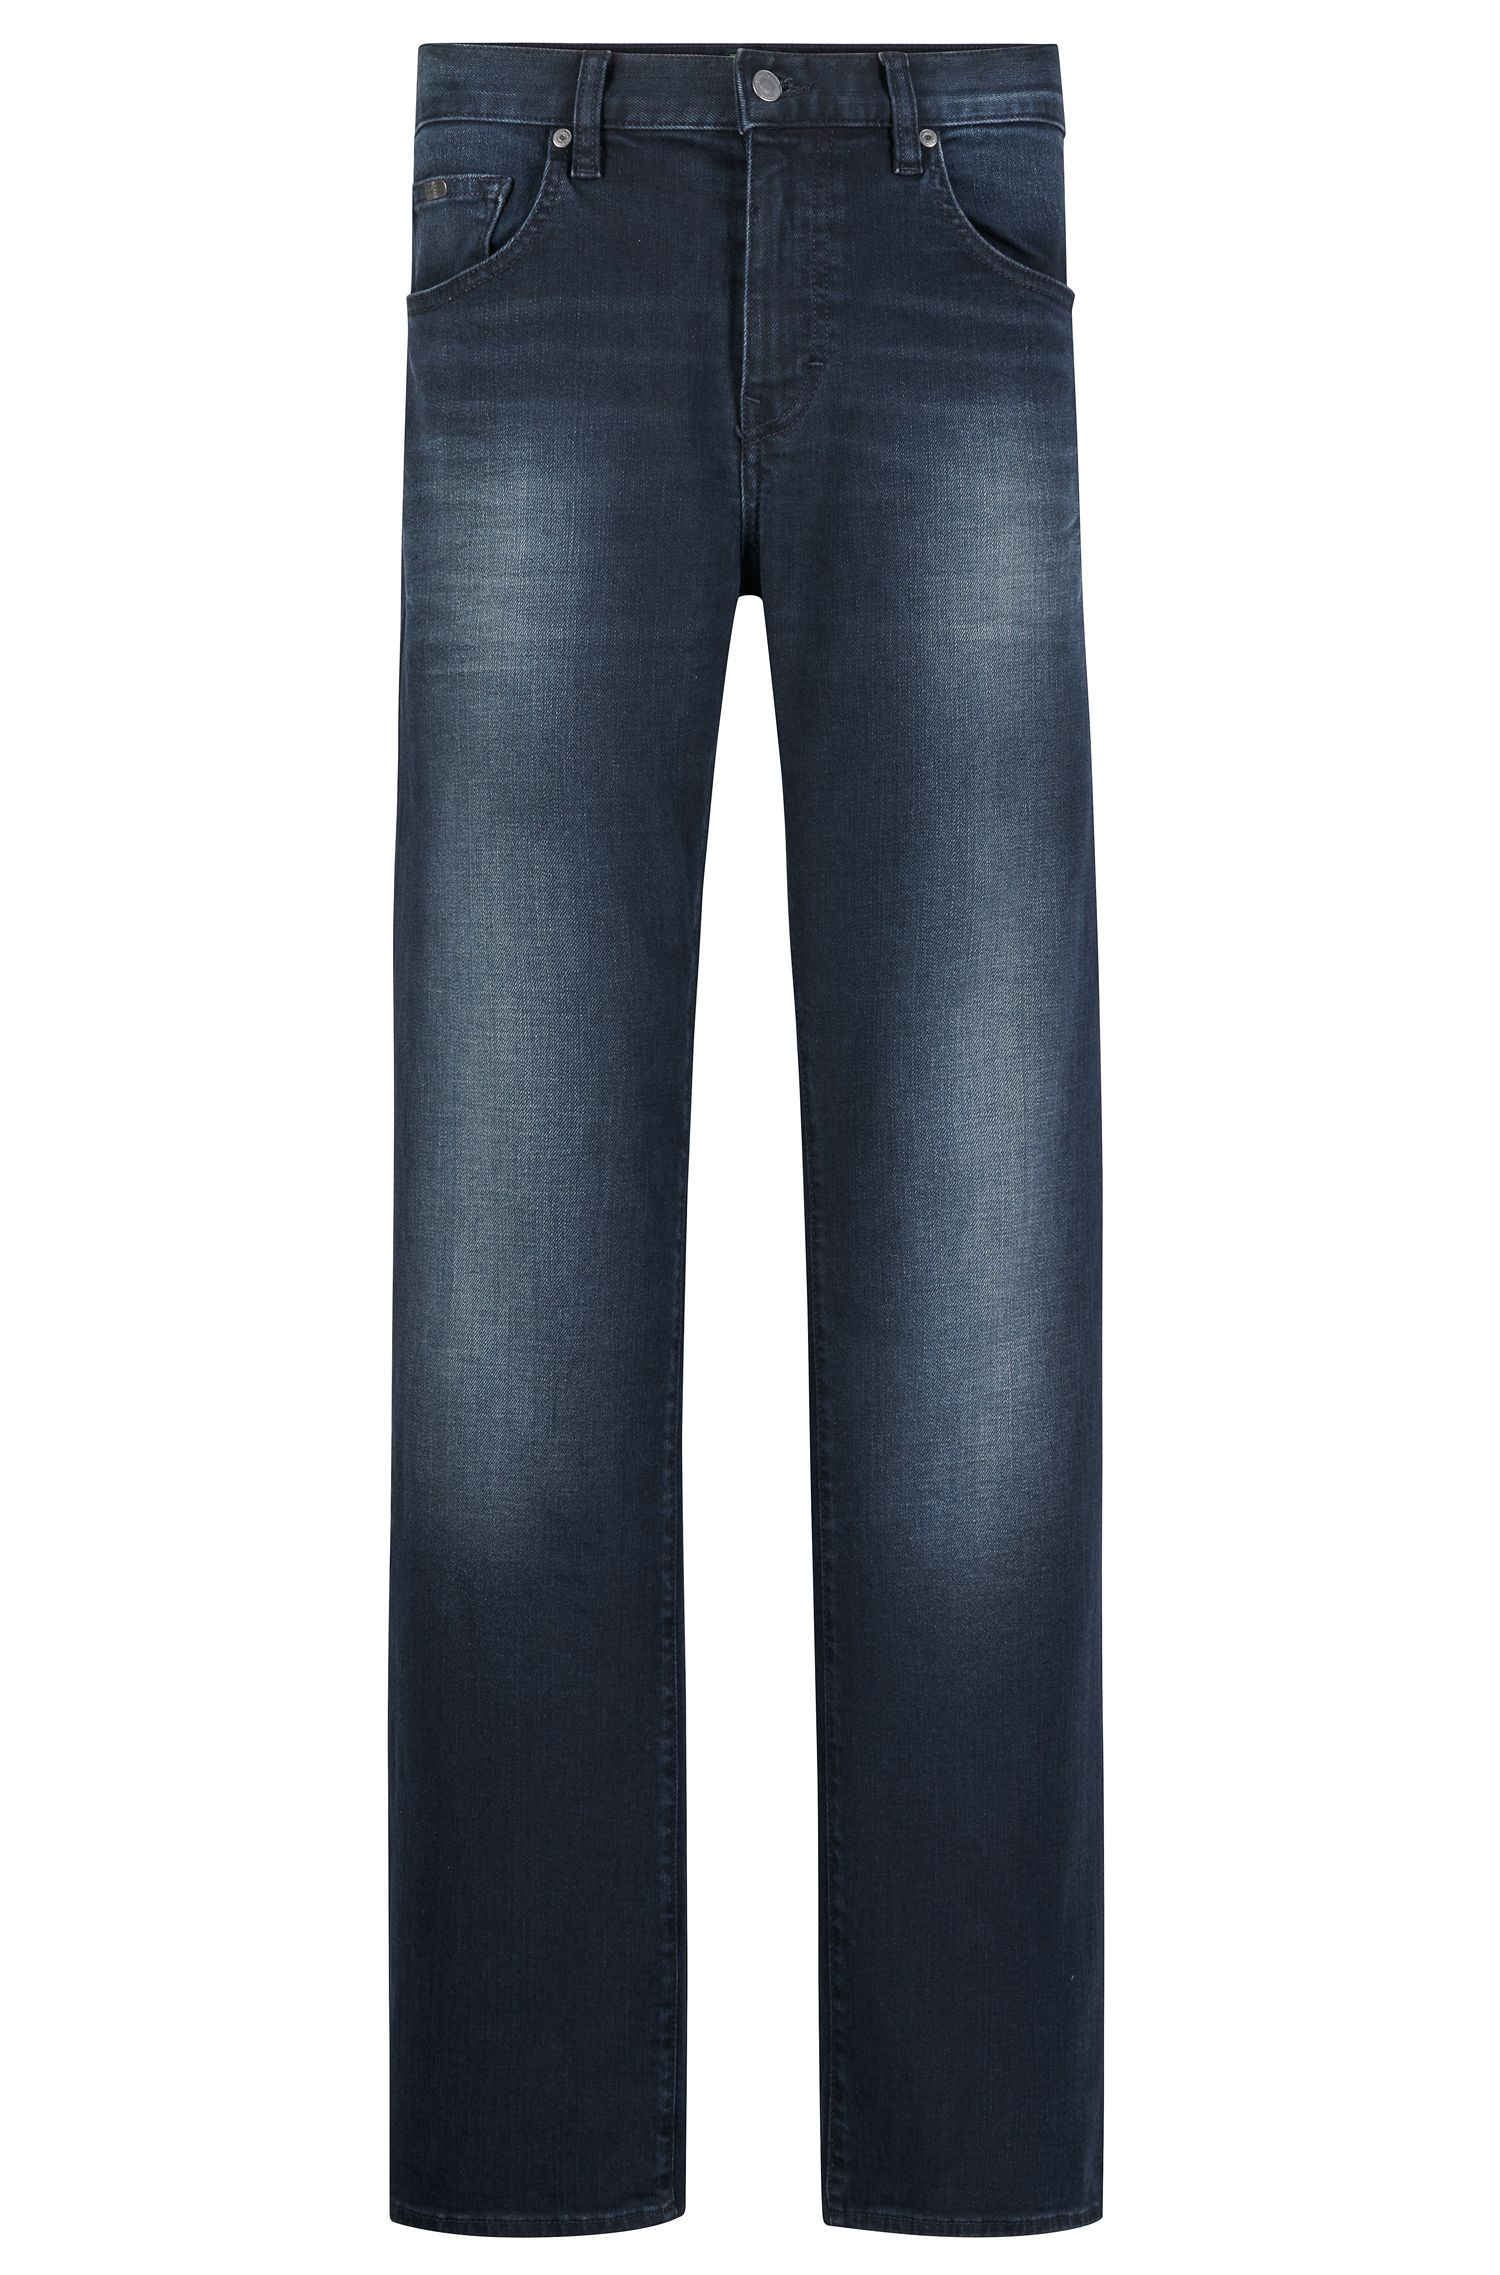 'C-Kansas' | Relaxed Fit, 13 oz Stretch Cotton Jeans